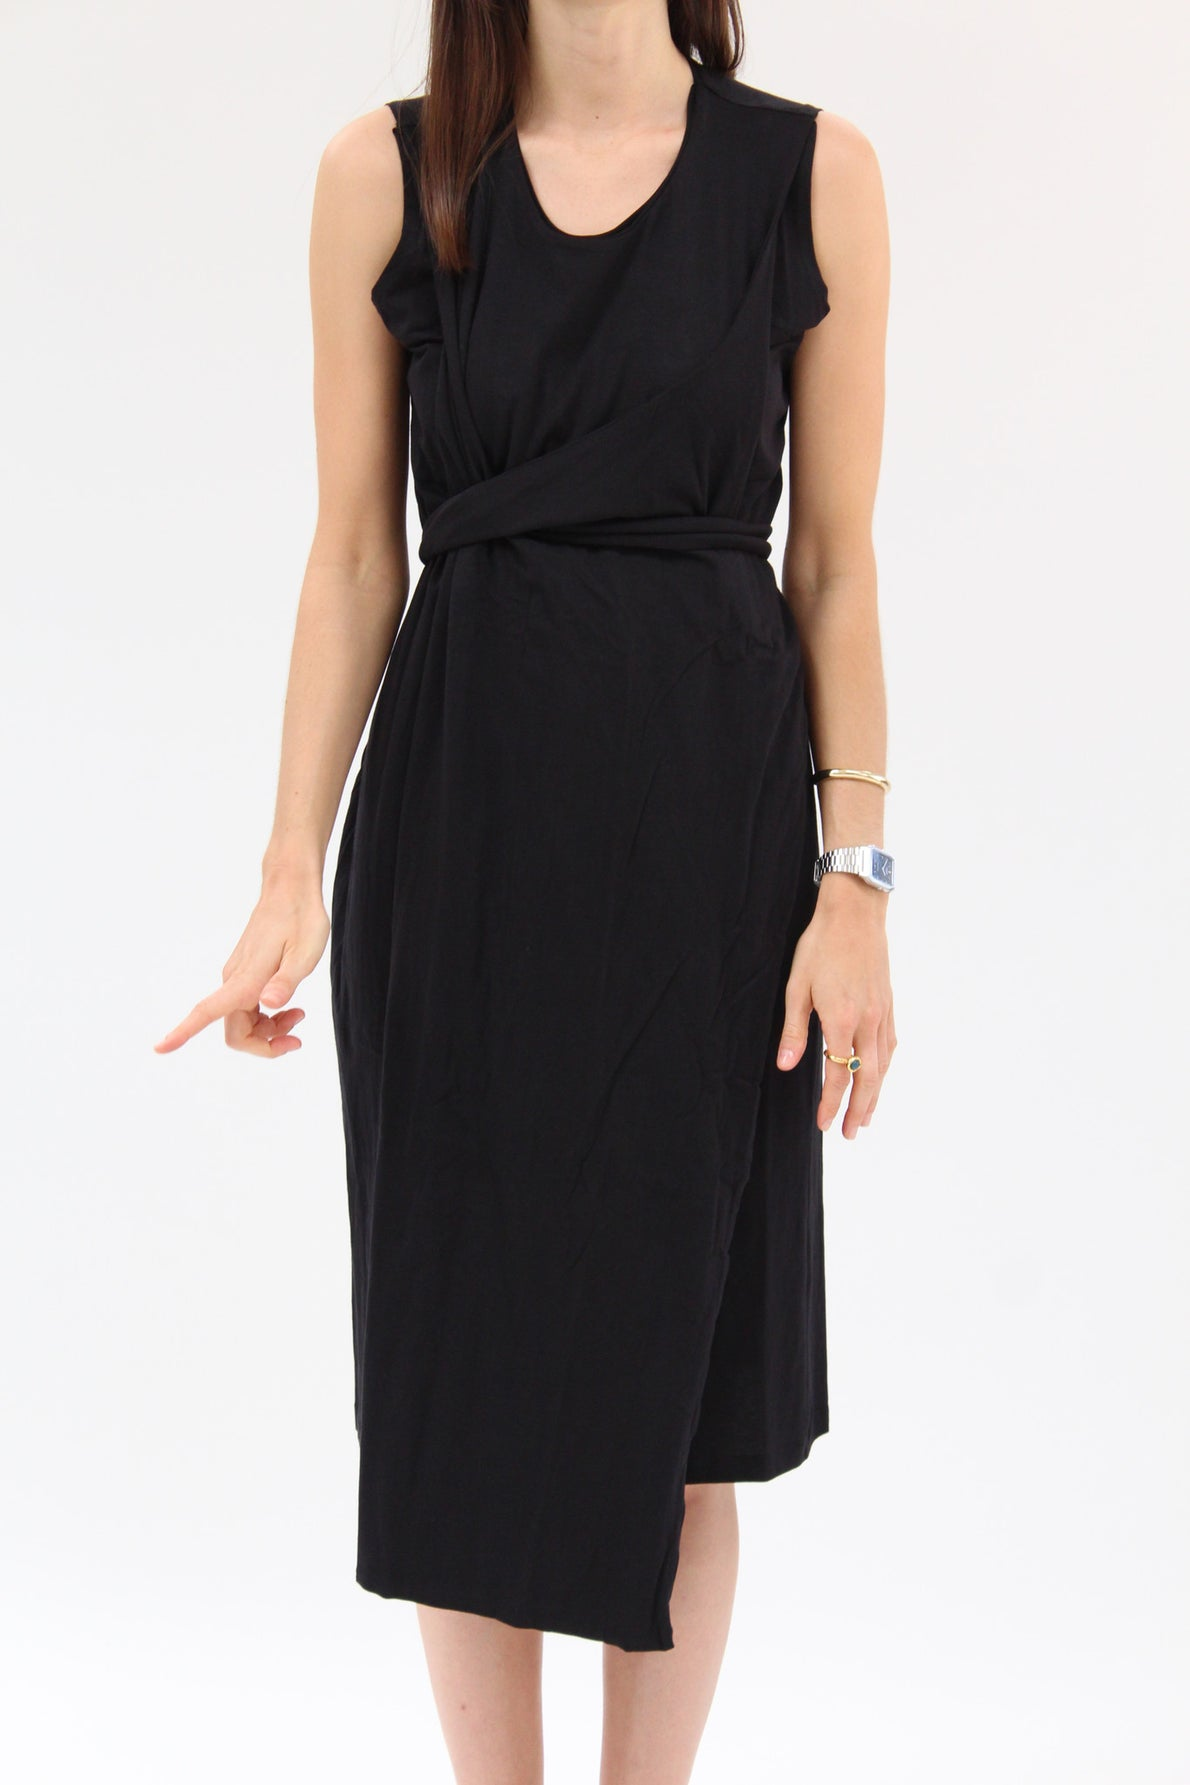 Kowtow Envelope Dress Black / Beklina